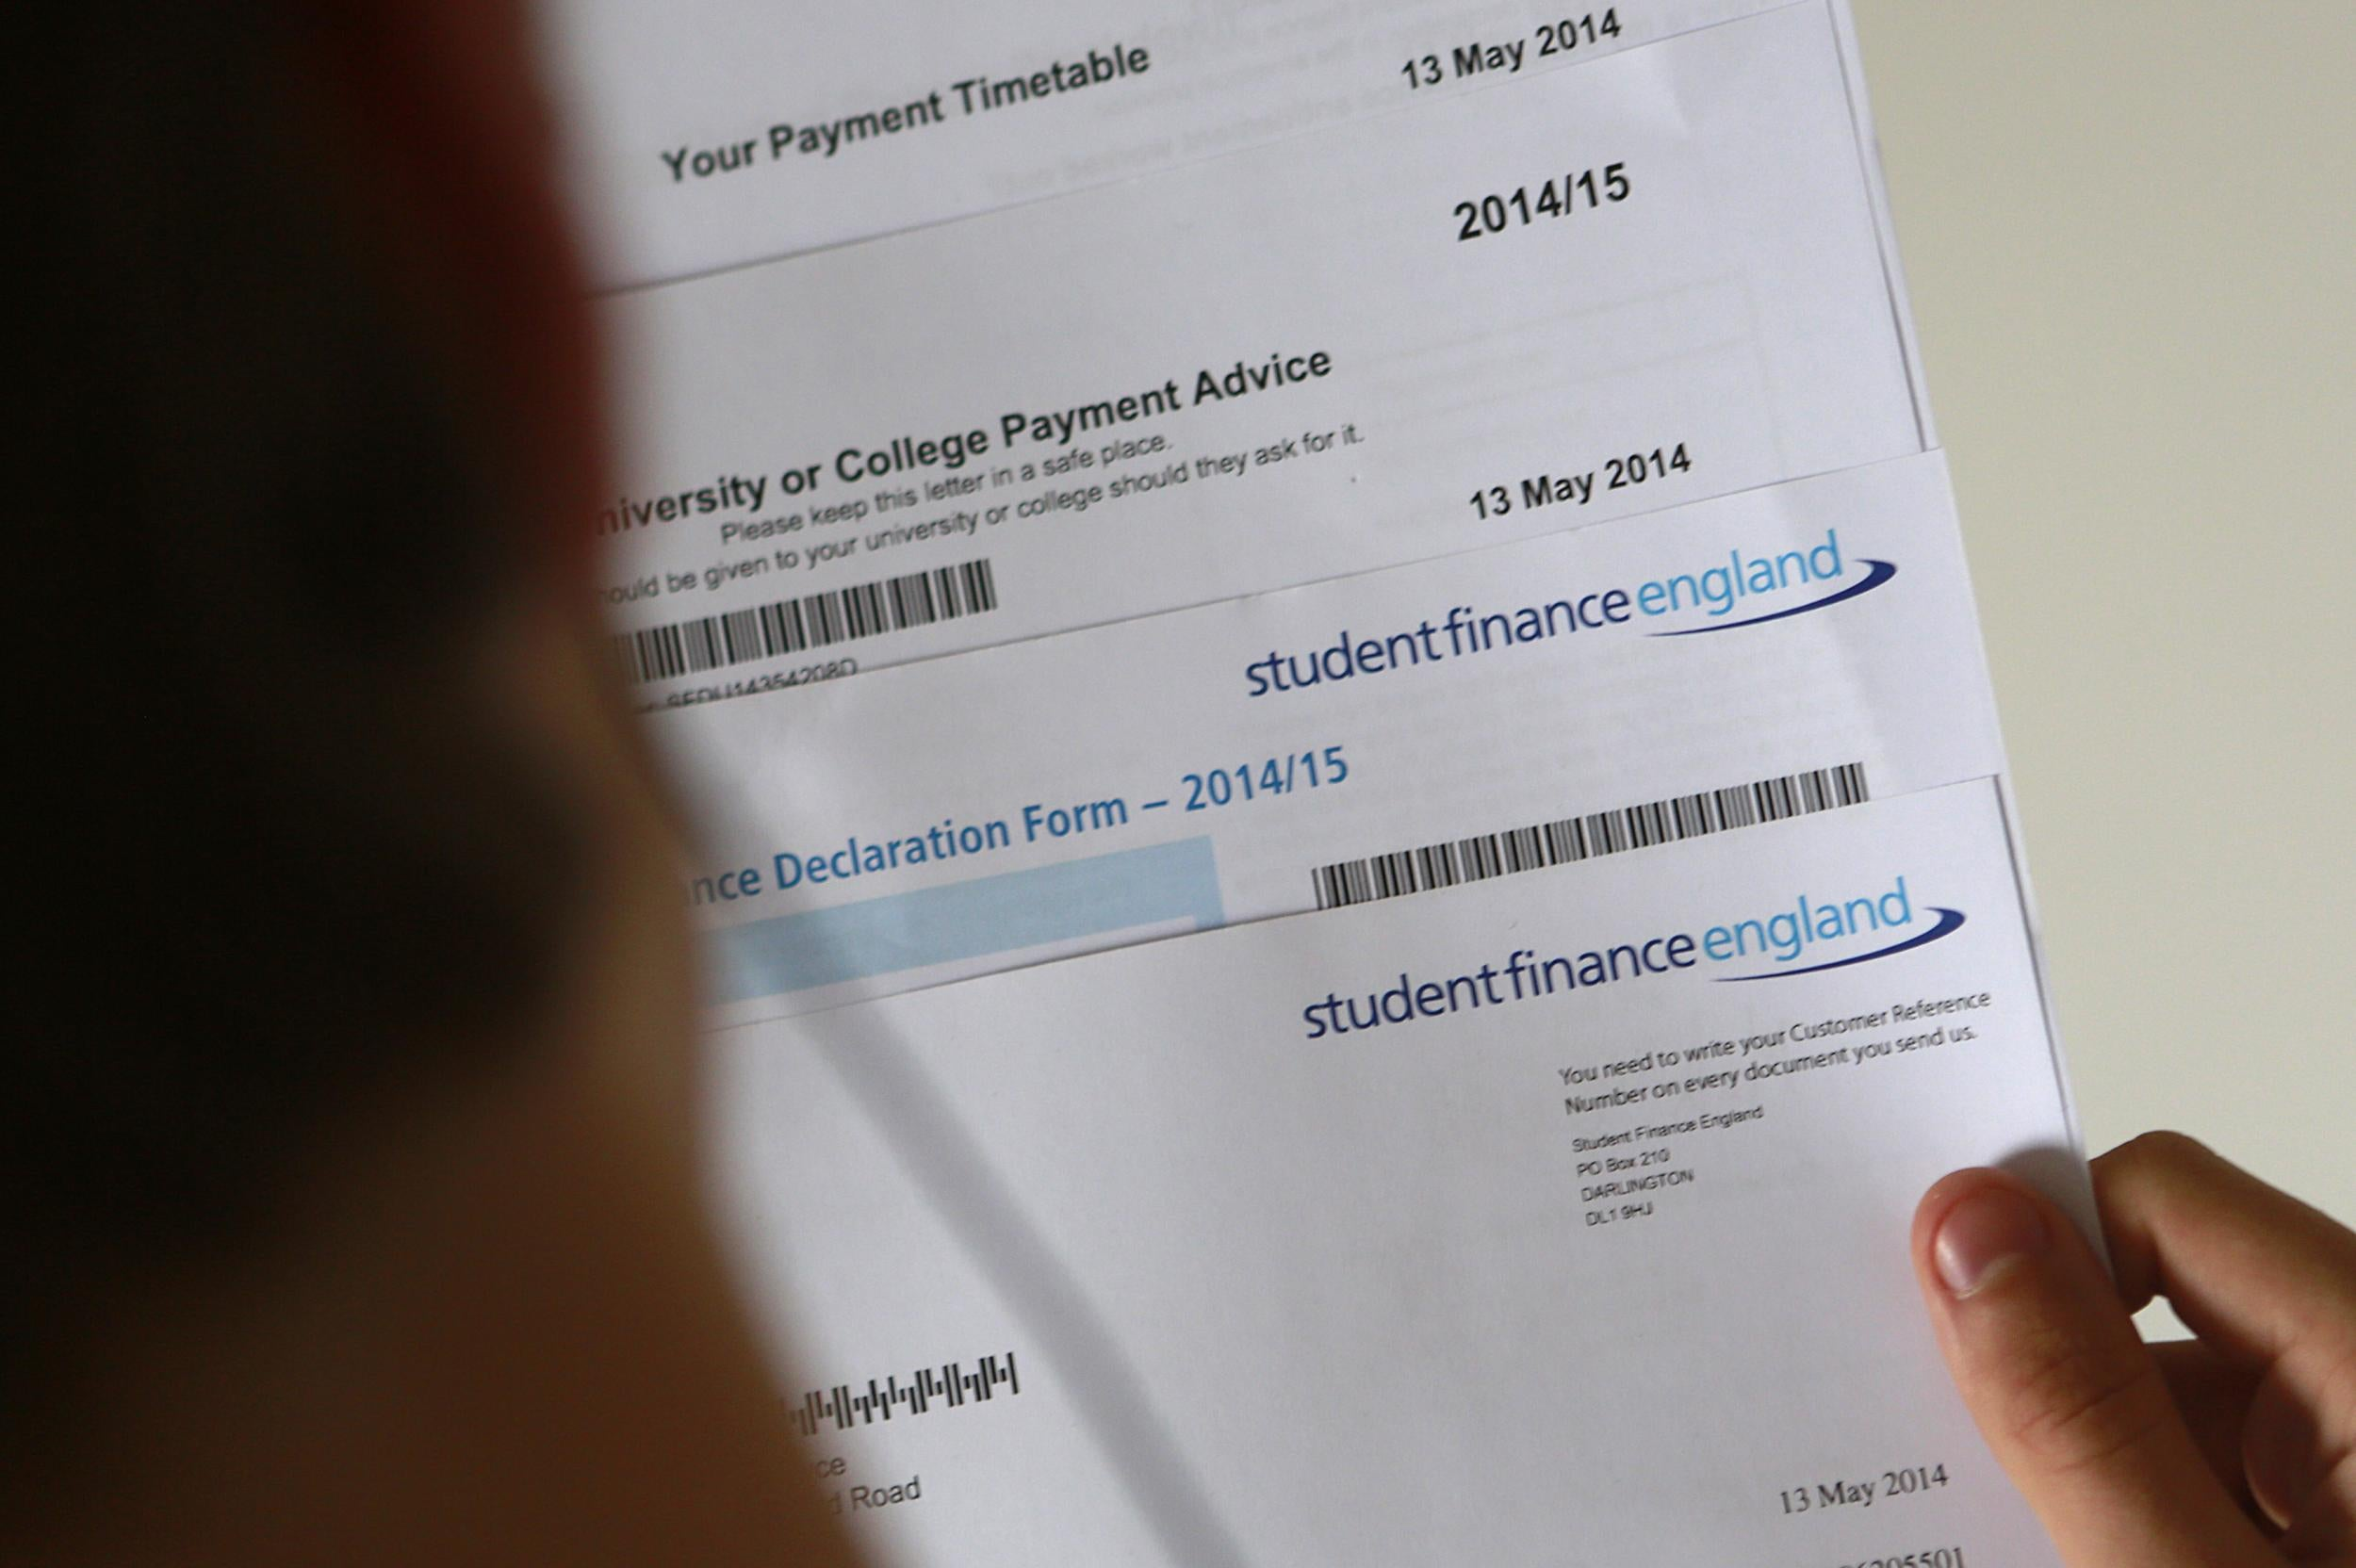 student loans - latest news, breaking stories and comment - The